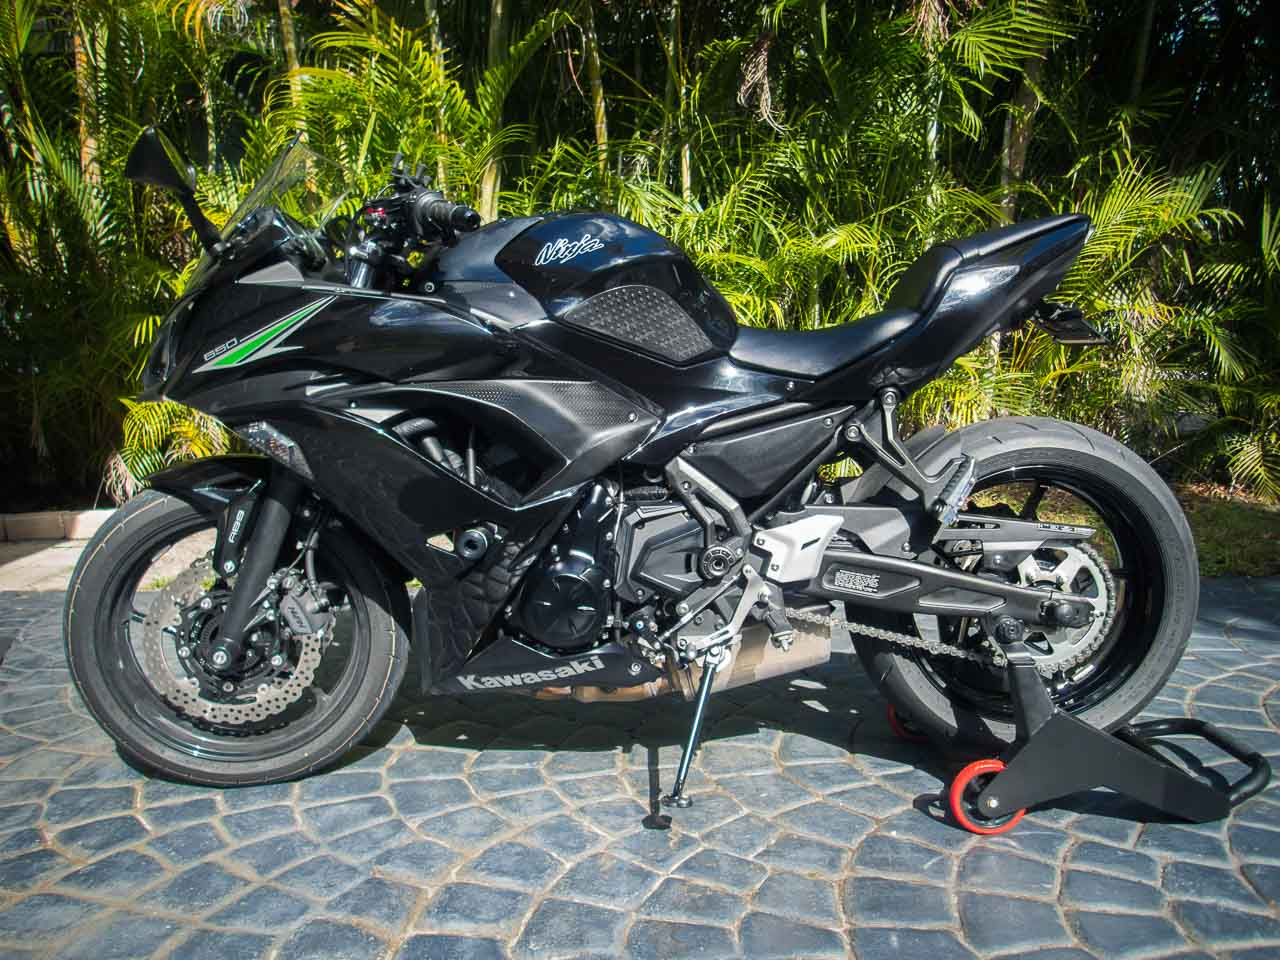 2017 Kawasaki Ninja 650 Parts Compatibility List